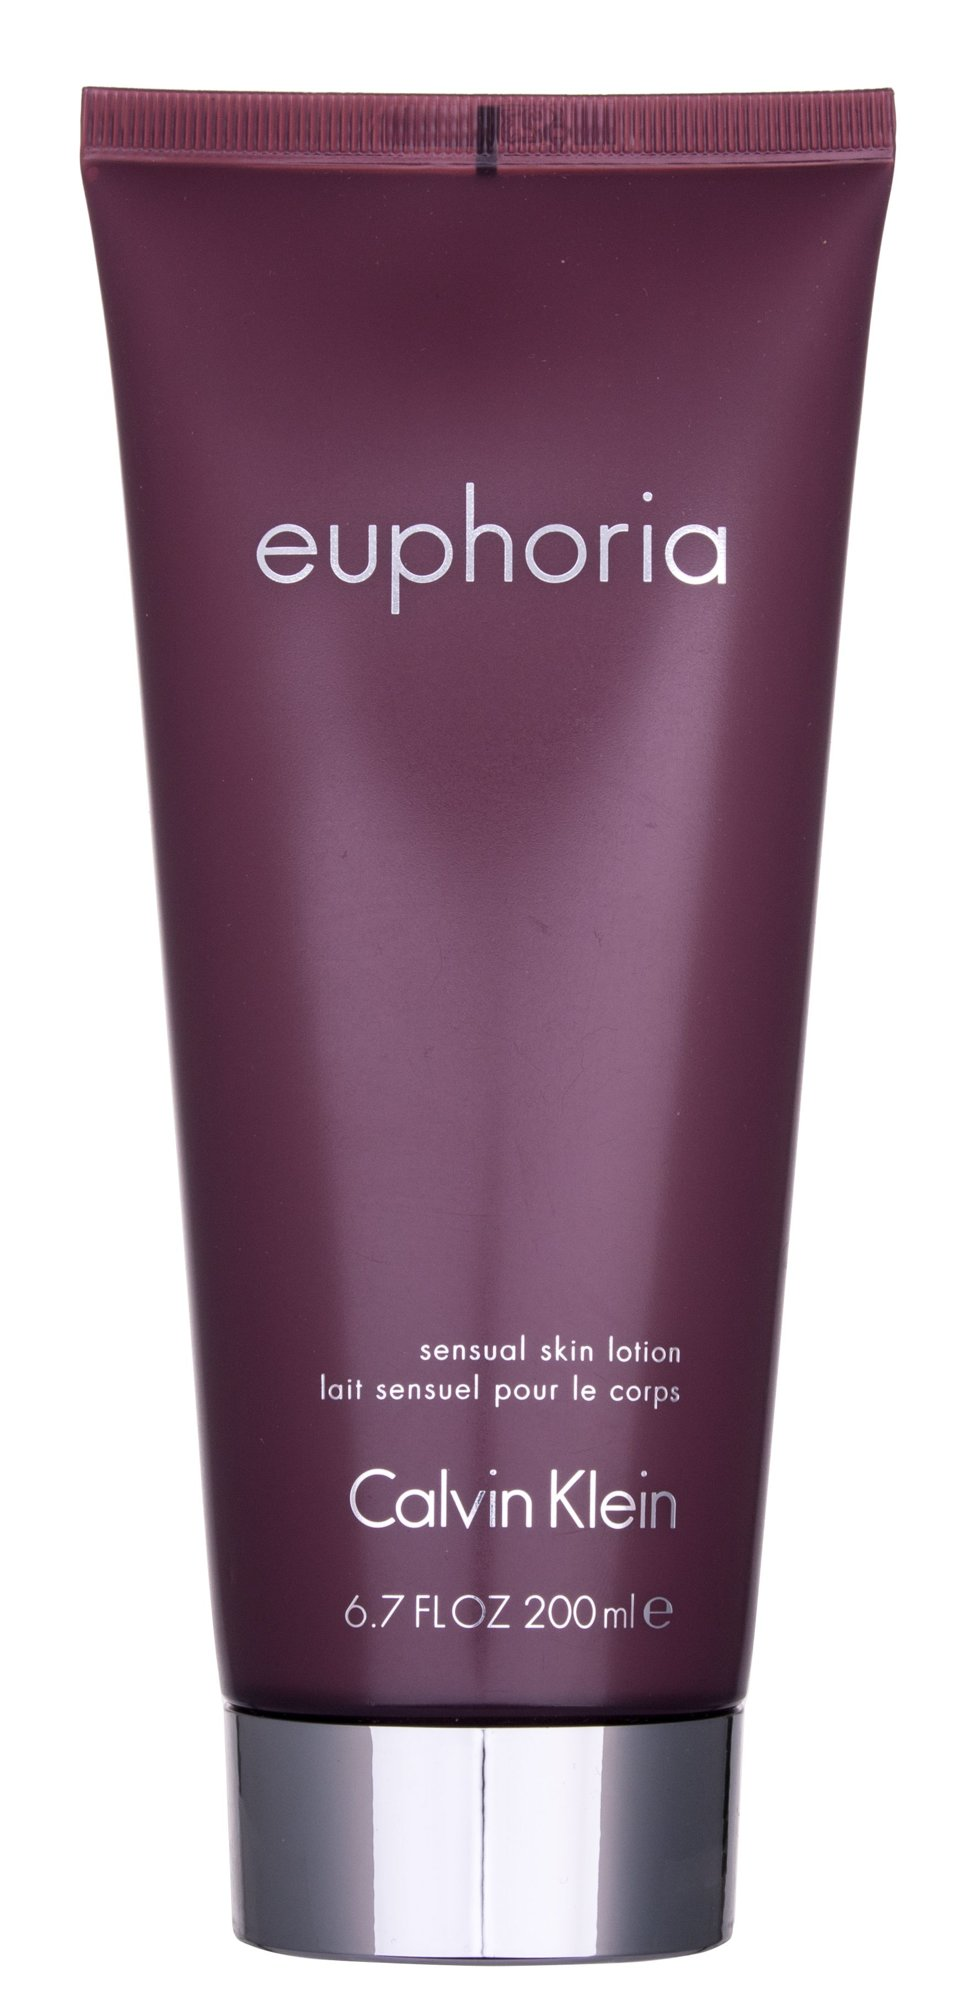 Calvin Klein Euphoria Body Lotion 200ml